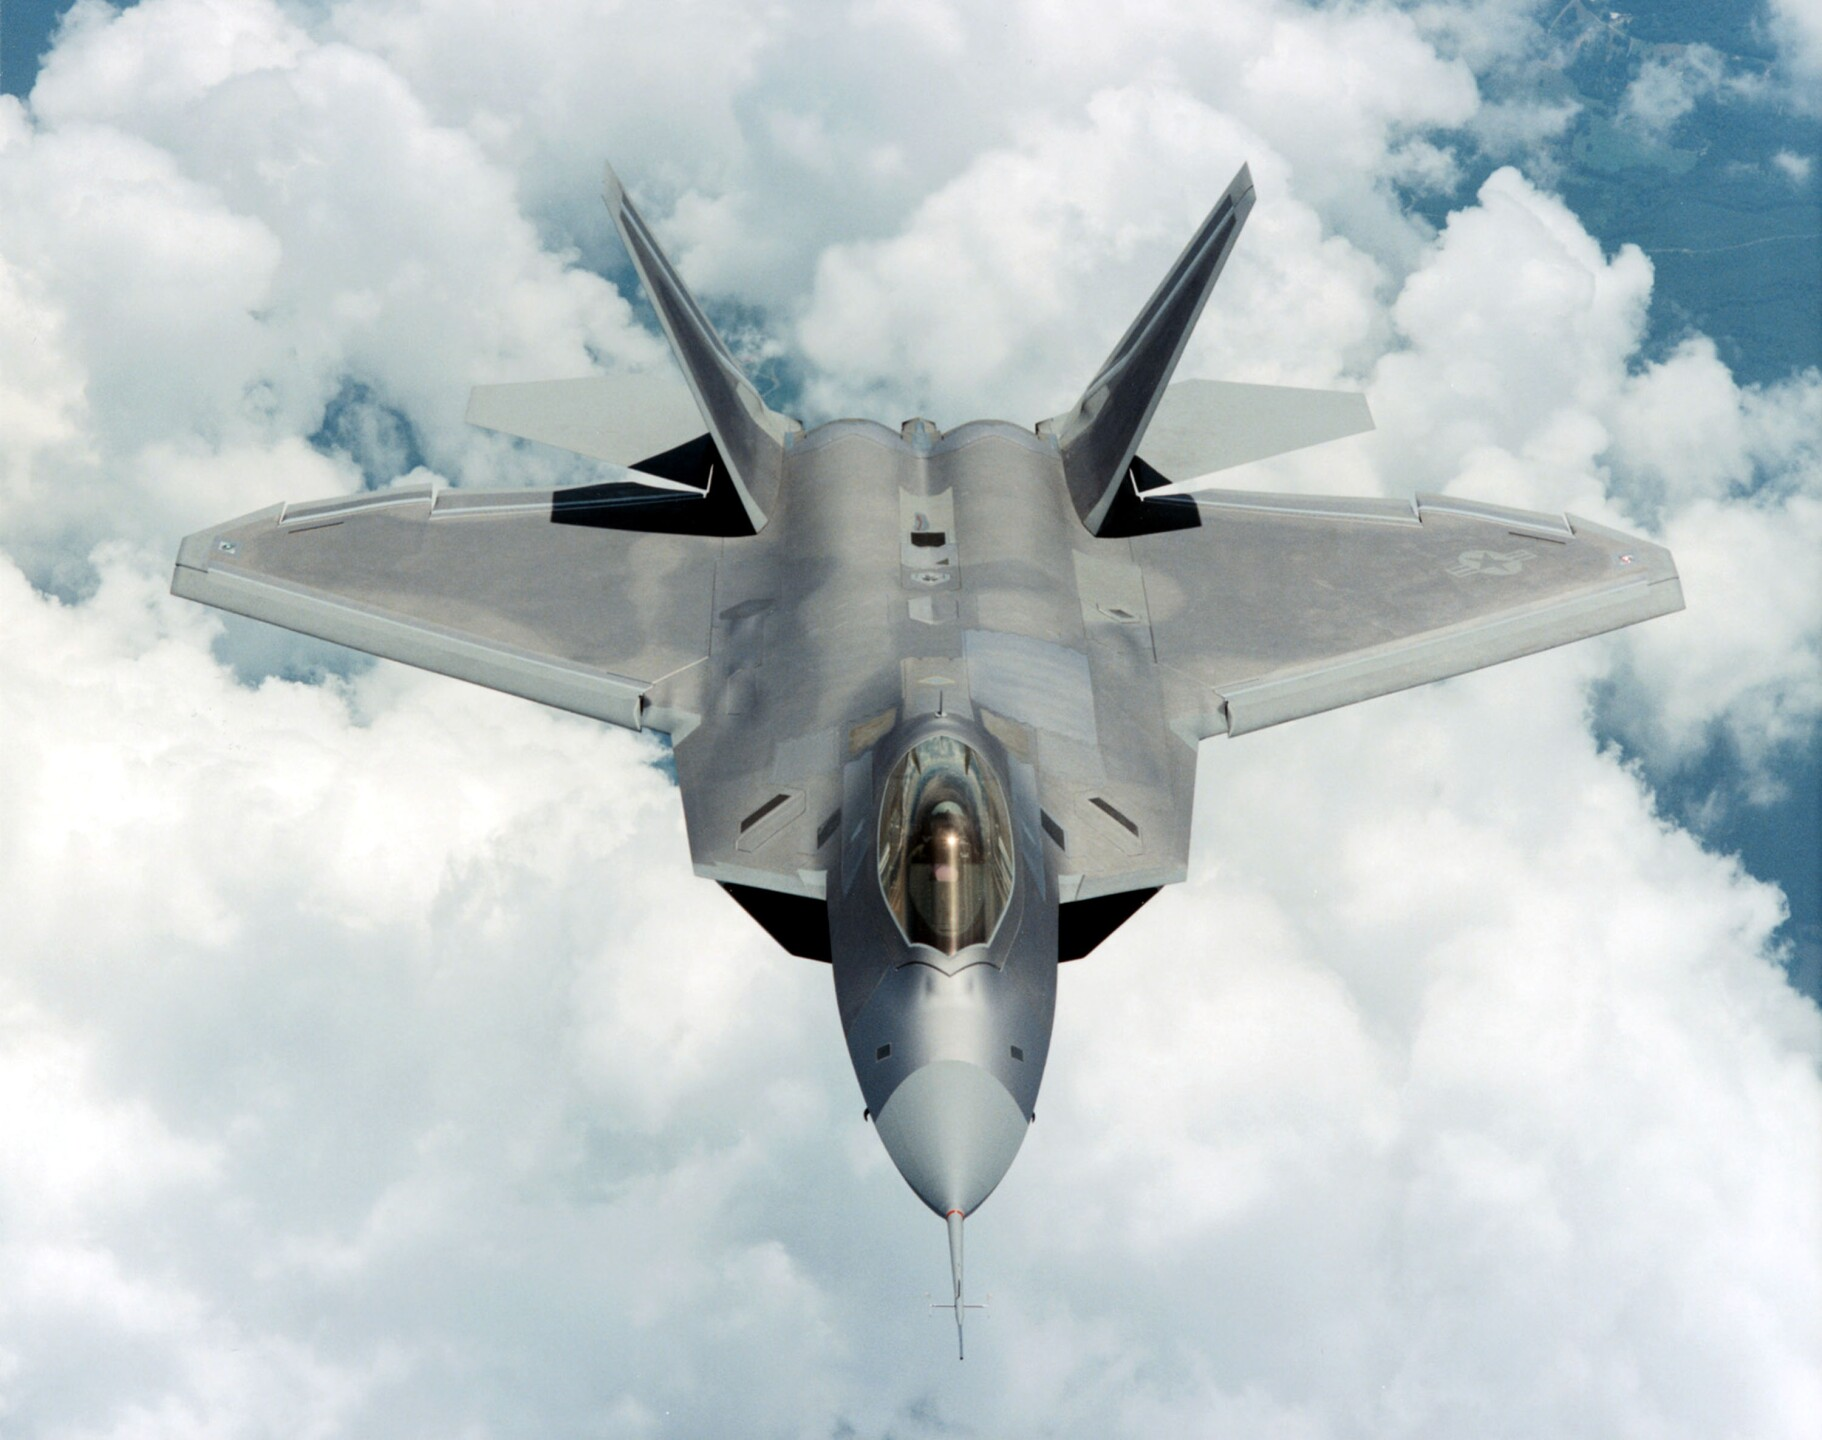 Photos: Virginia's congressional delegation wants Air Force's F-22 Squadron in HamptonRoads